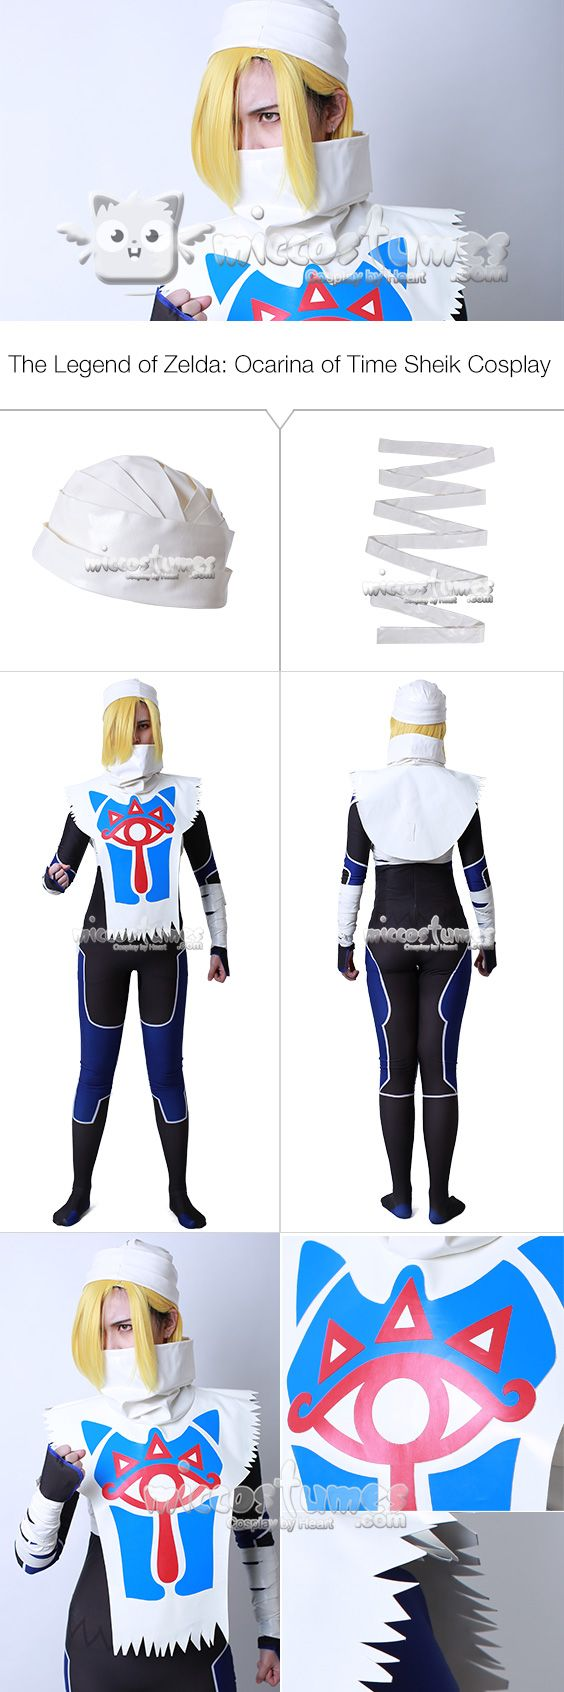 Details of The Legend of Zelda: Ocarina of Time Sheik Cosplay Costume  #miccostumes #cosplay #thelegendofzelda #ocarinaoftime #sheik #cosplaycostumes